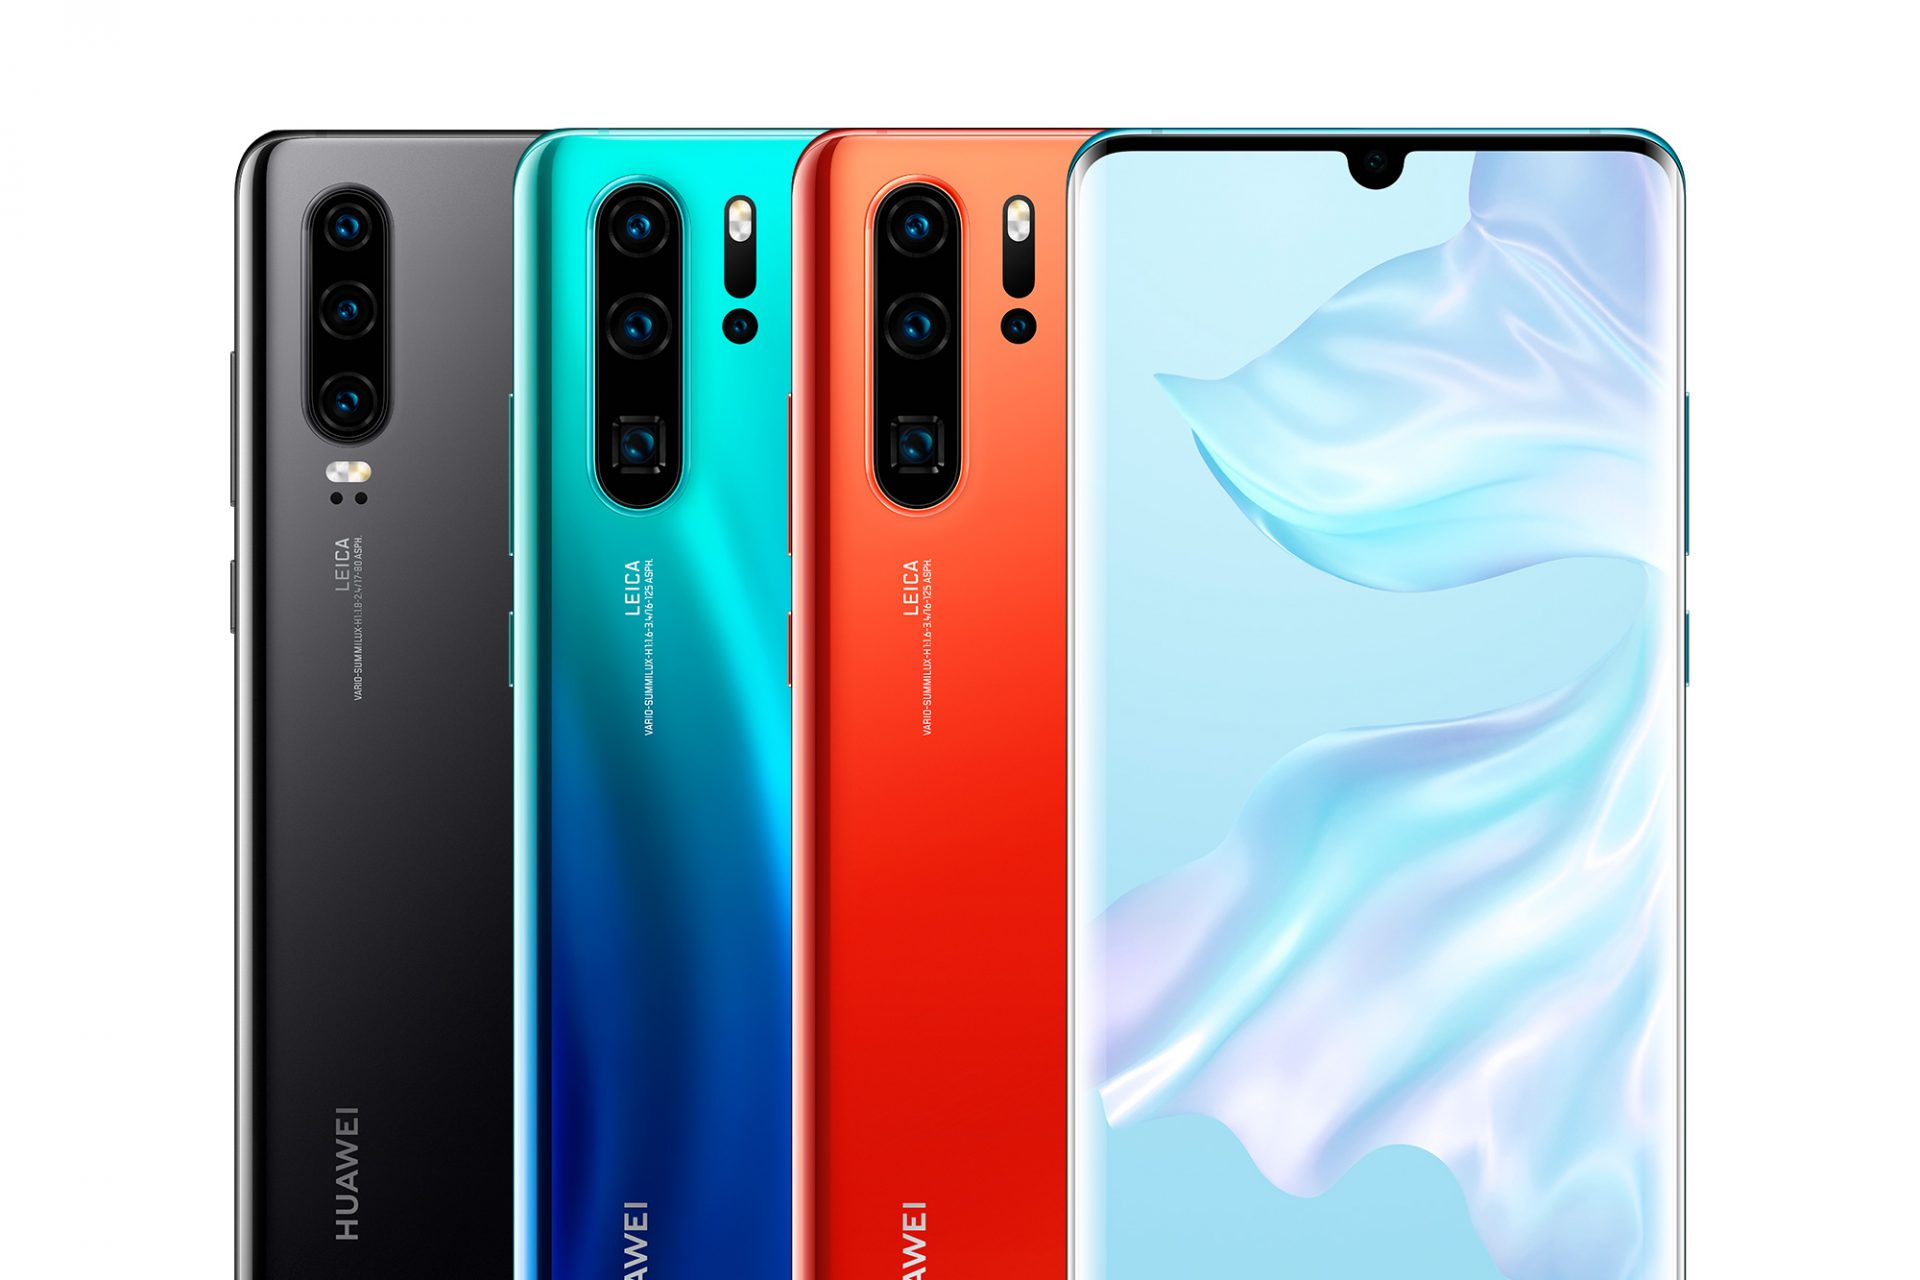 a1e8a1295ae Huawei P30 and P30 Pro Are Coming To Kenya Soon